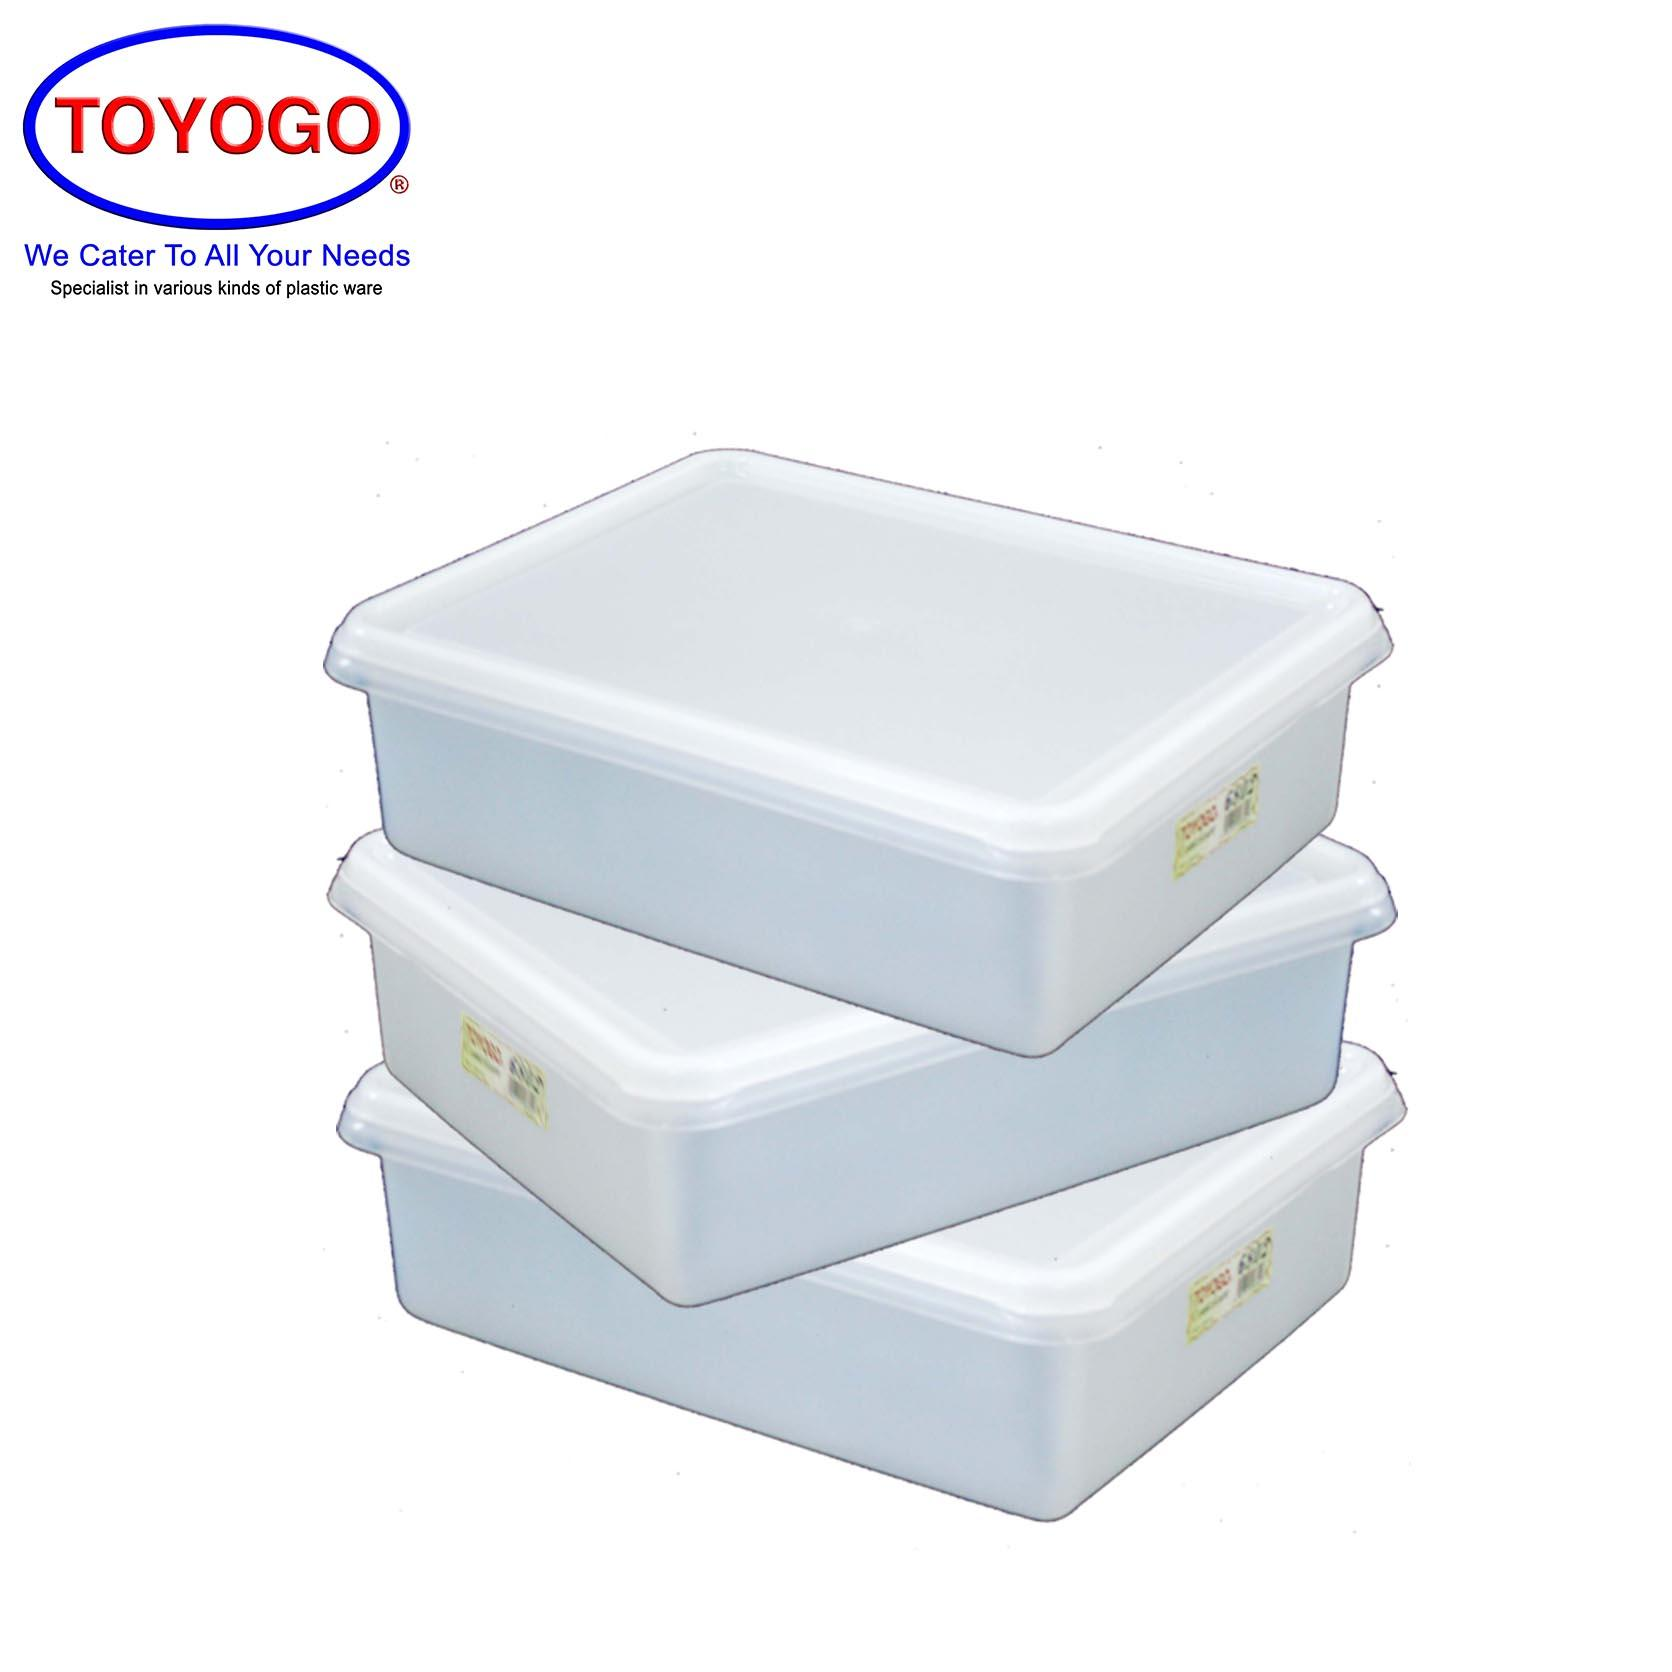 Toyogo Rectangular Container (Bundle of 3) (6802)